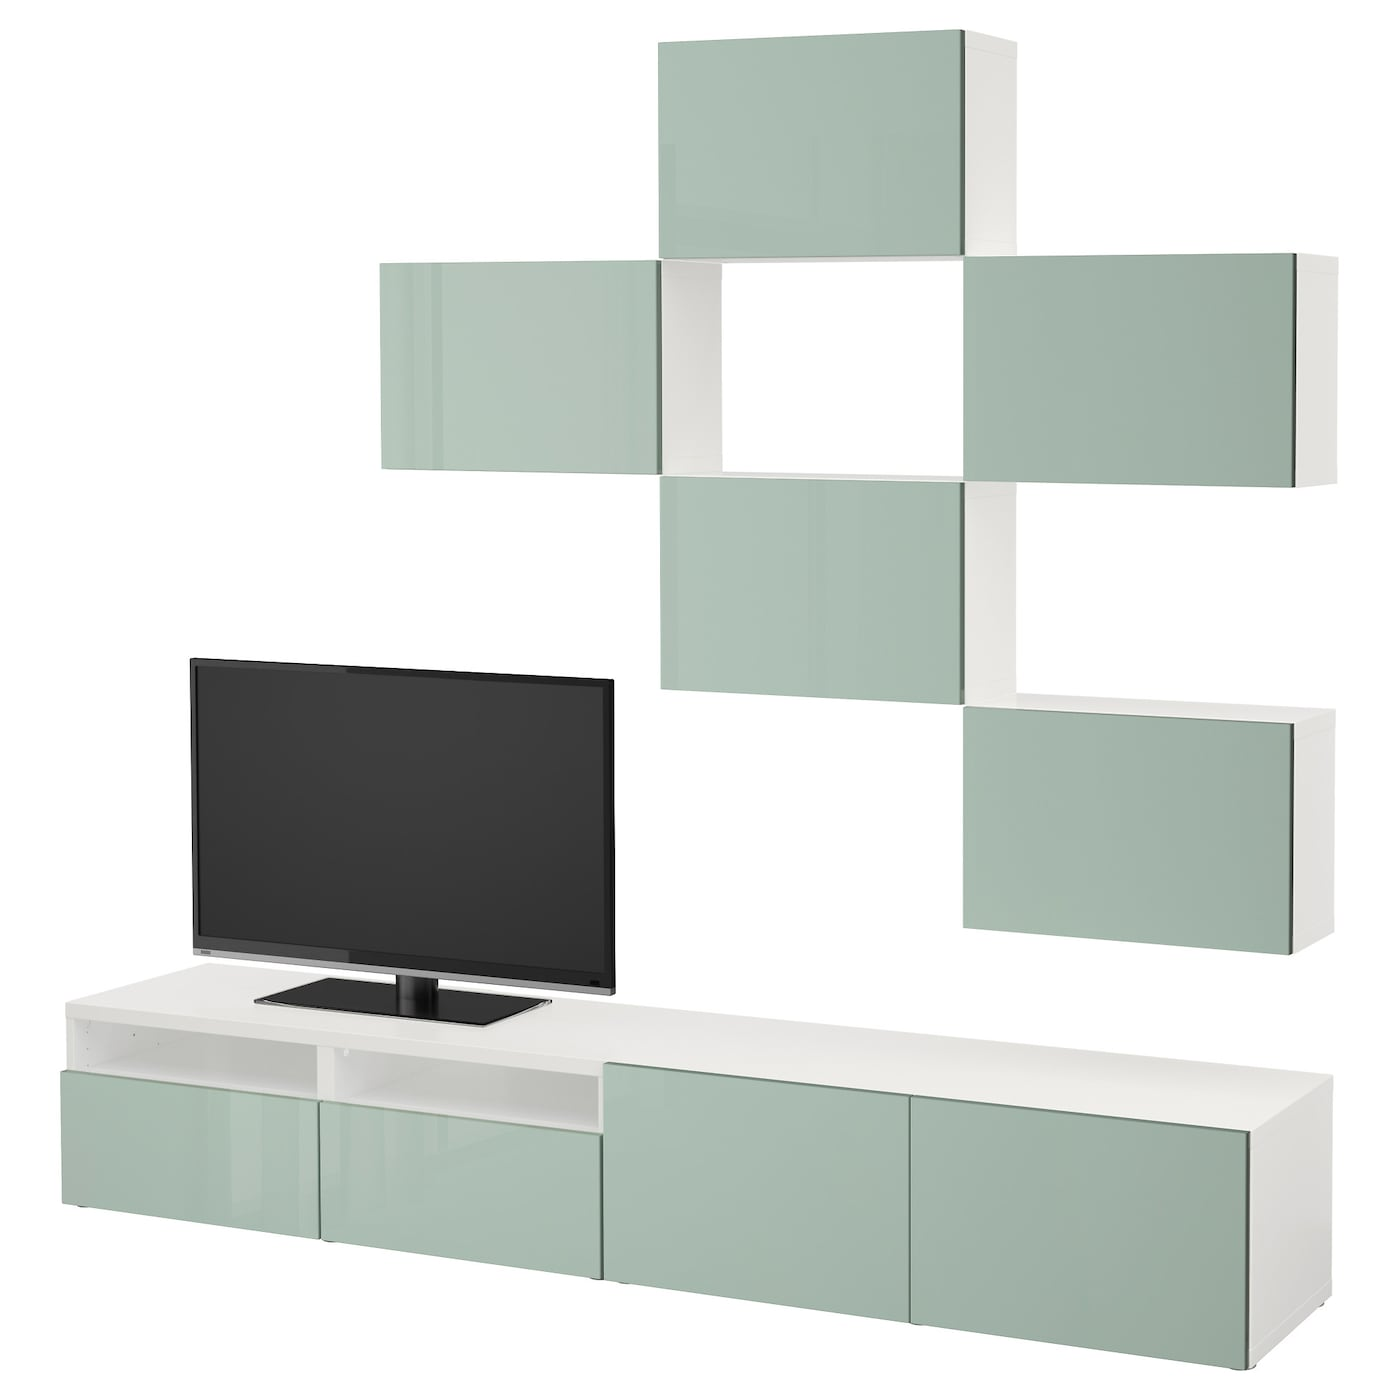 Best Combinaison Meuble Tv Blanc Selsviken Brillant Gris Vert  # Meuble Tv Brillant